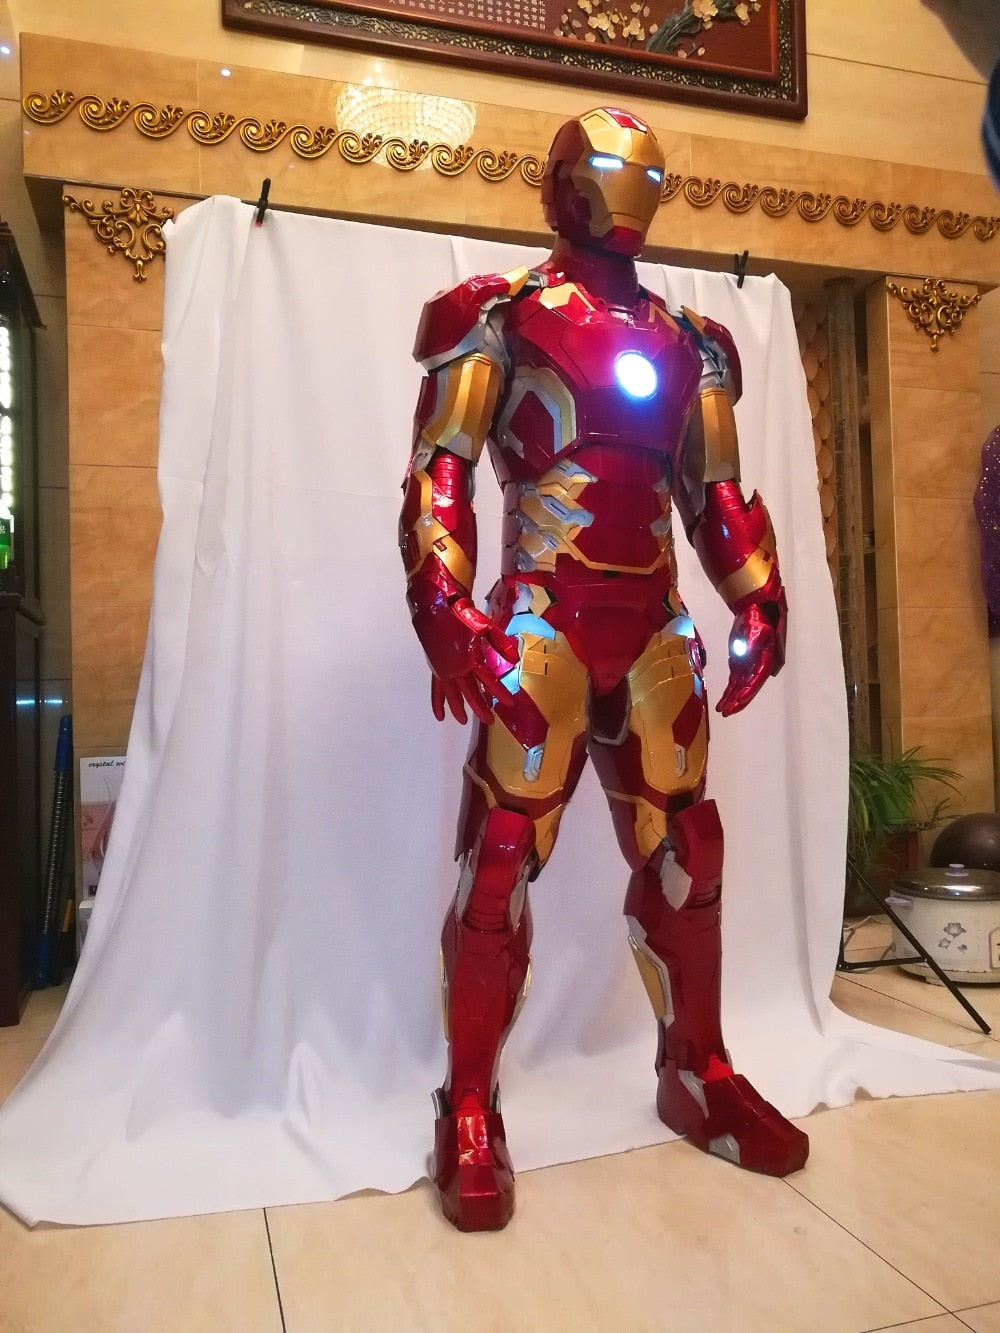 Iron Man MK43 Suit Iron Man Cosplay Costume Wearable Made to Measure and Movie Accurate Iron Man Armor